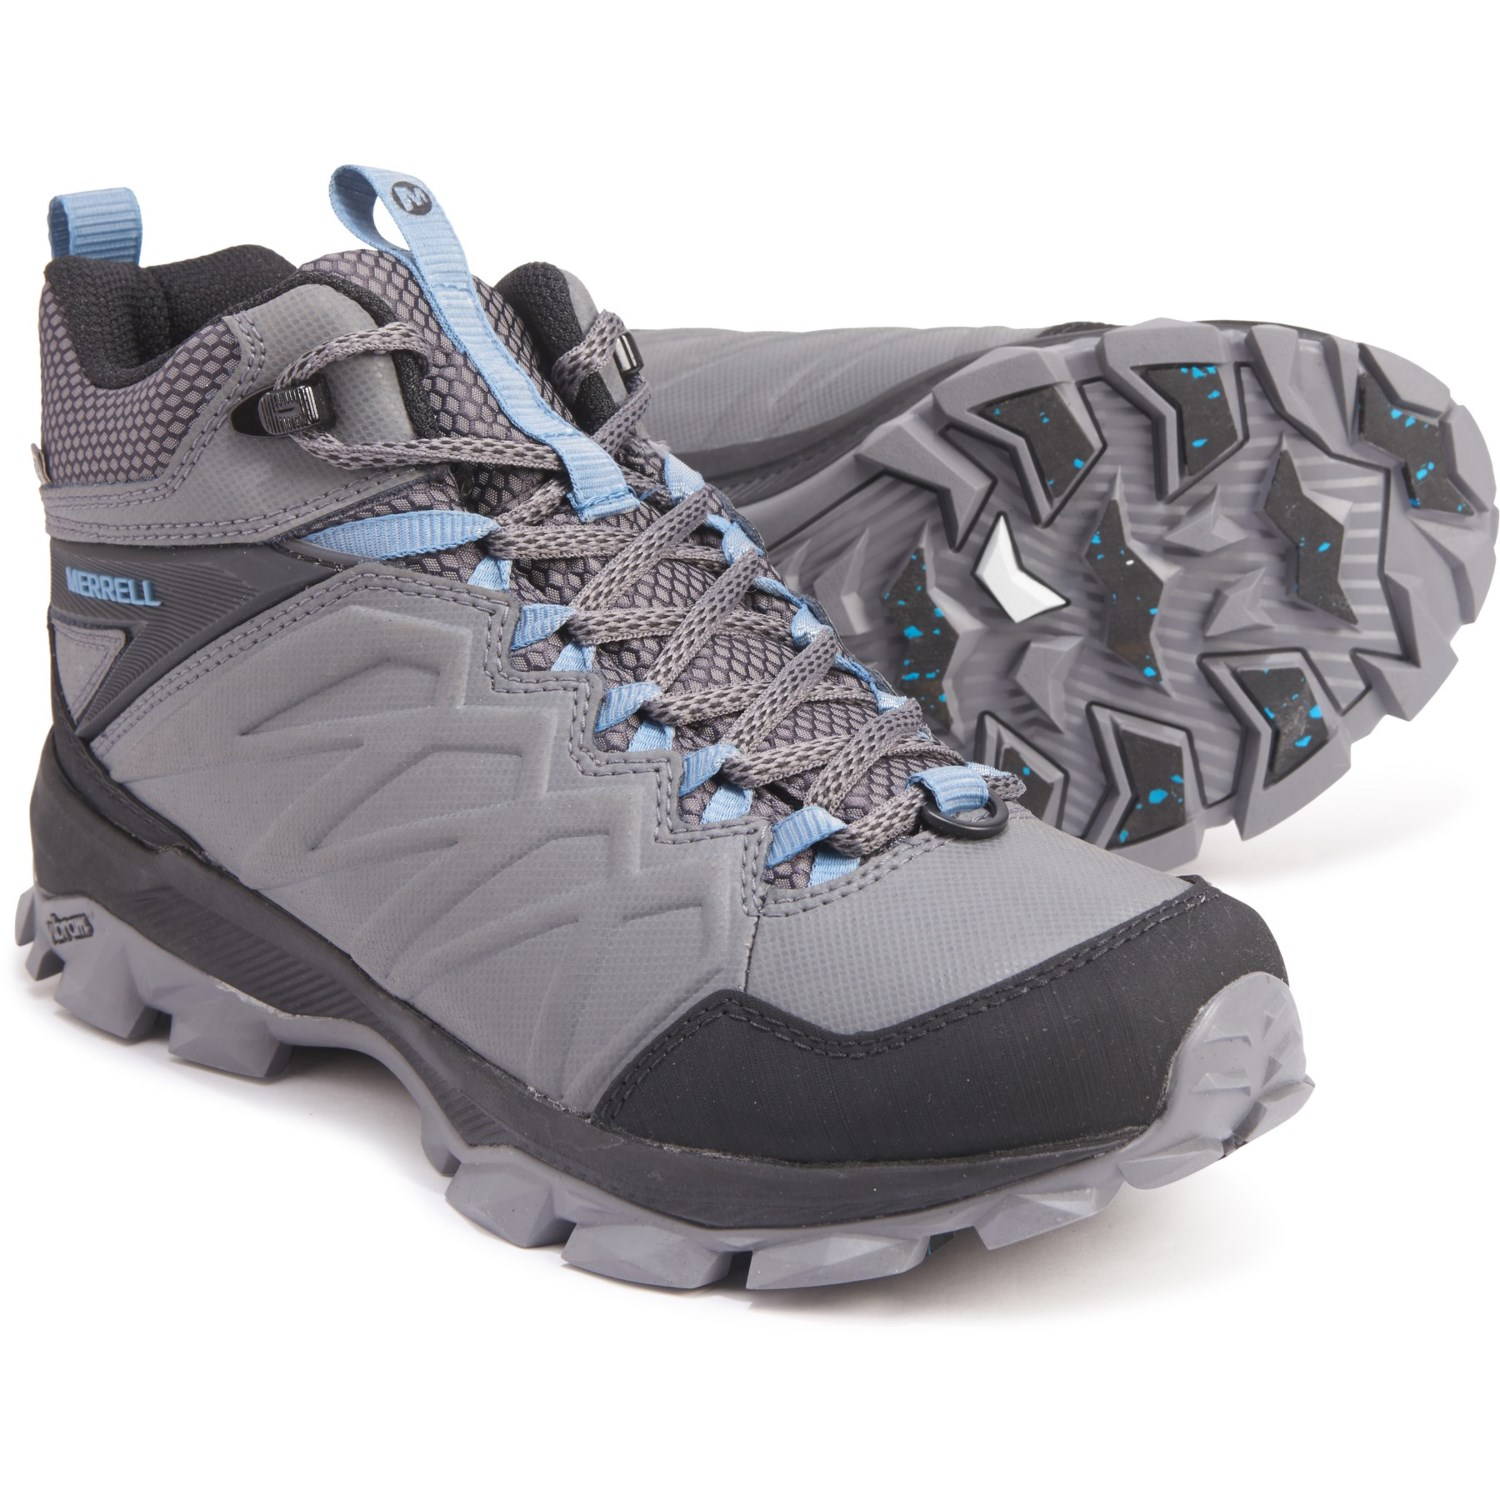 Merrell Thermo Freeze Mid Hiking Boots